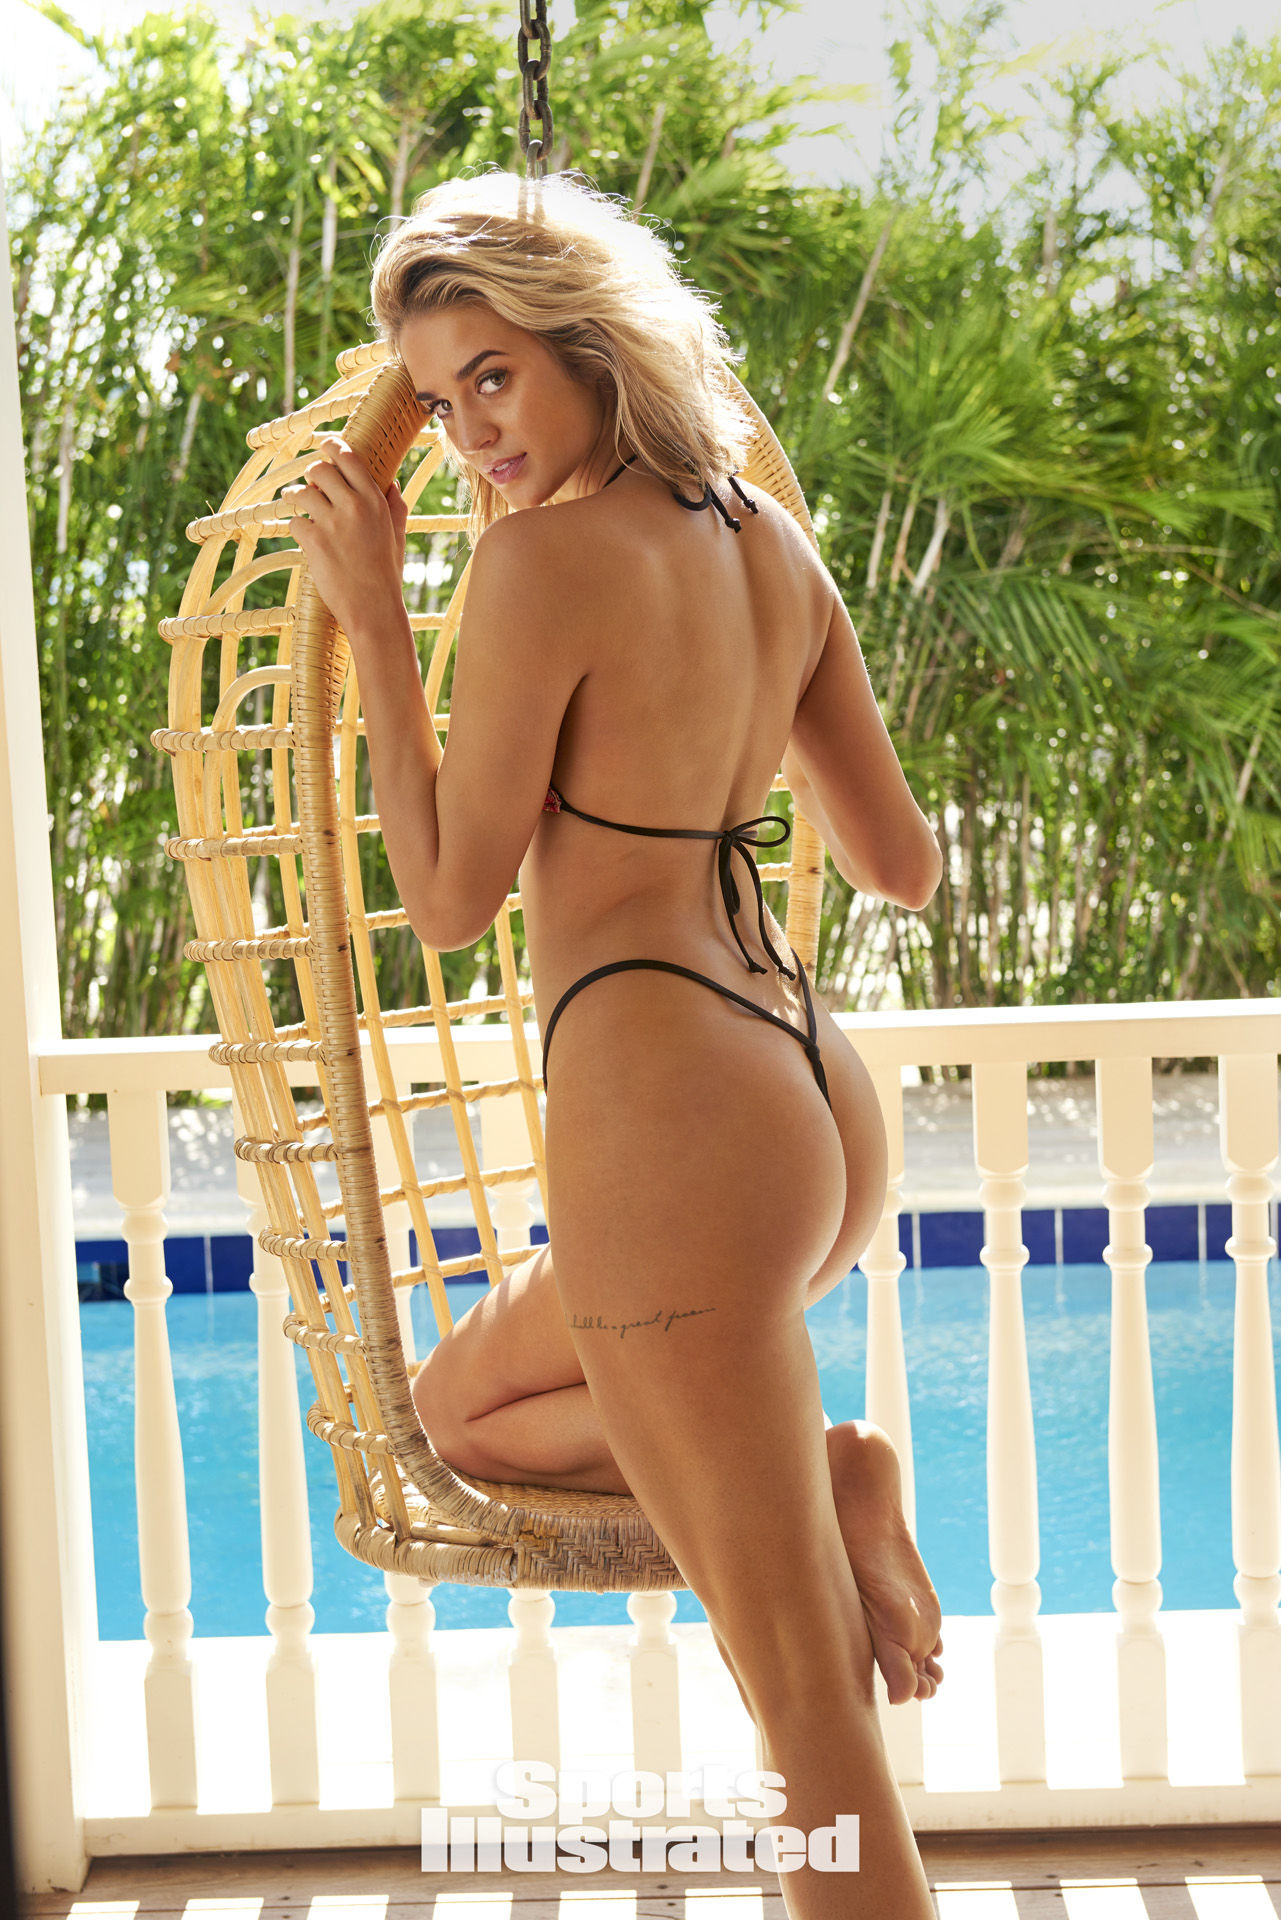 Allie Ayers naked (65 photo) Video, Twitter, panties